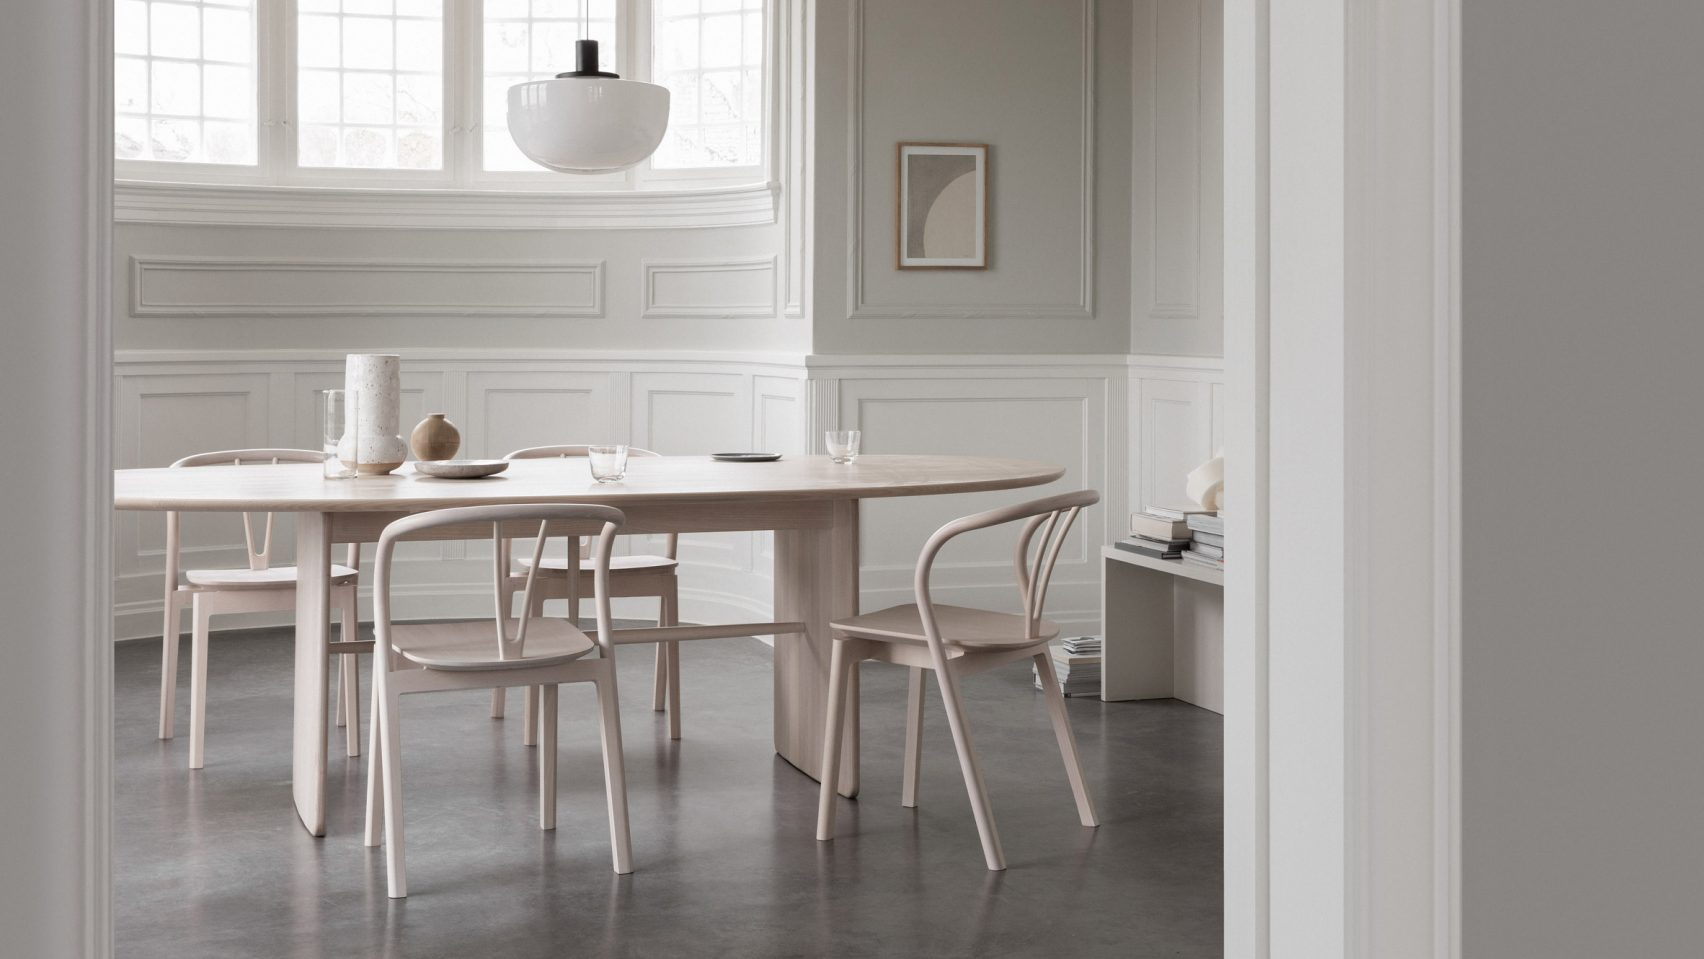 35+ Ercol romana dining table and chairs Inspiration